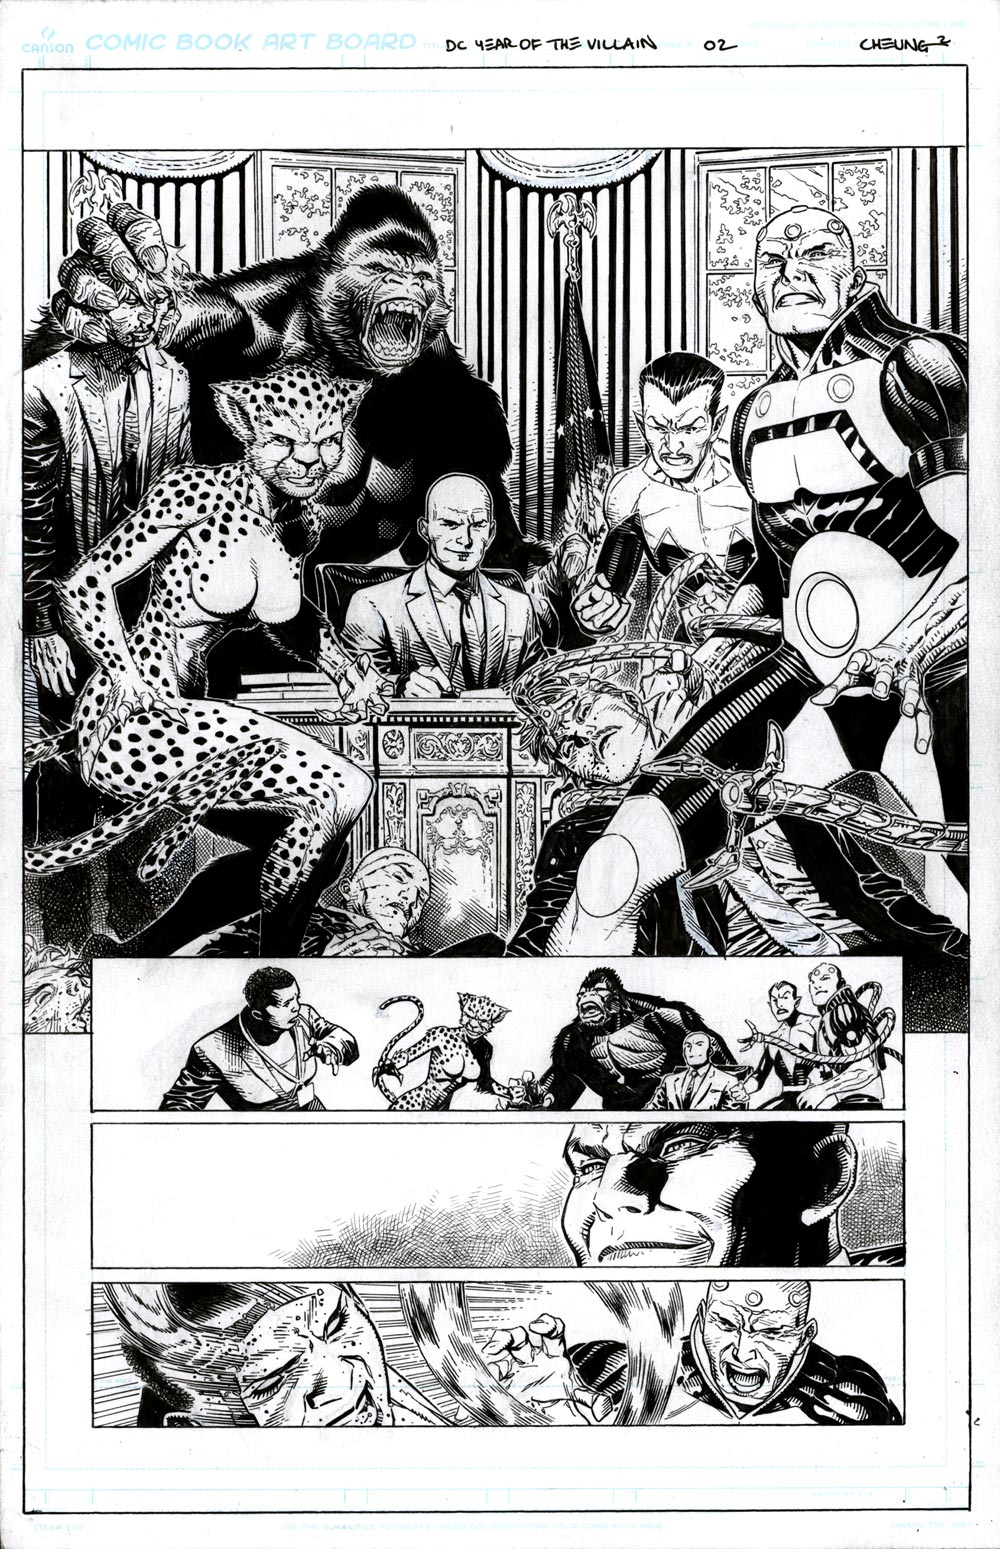 Image of YEAR OF THE VILLAIN #1 - Page 02